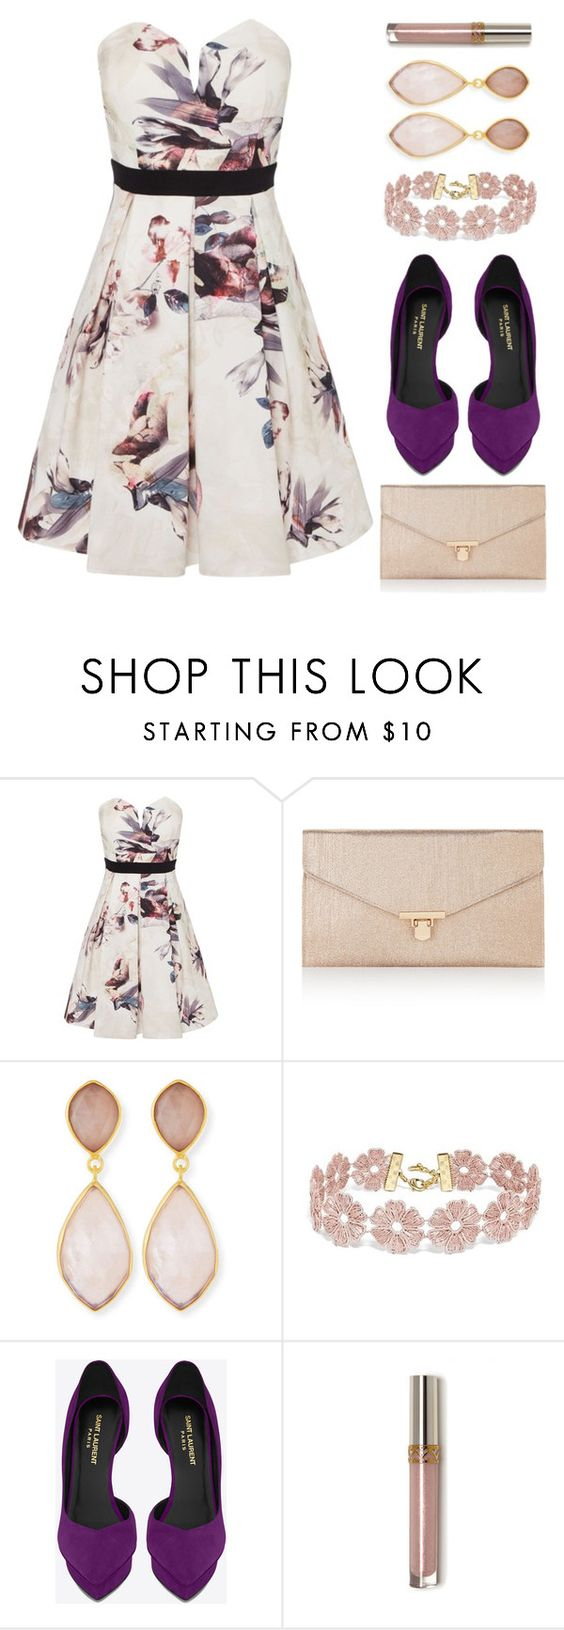 """""""Untitled #630"""" by looks-lie ❤ liked on Polyvore featuring Little Mistress, Accessorize, Dina Mackney, BaubleBar and Yves Saint Laurent"""